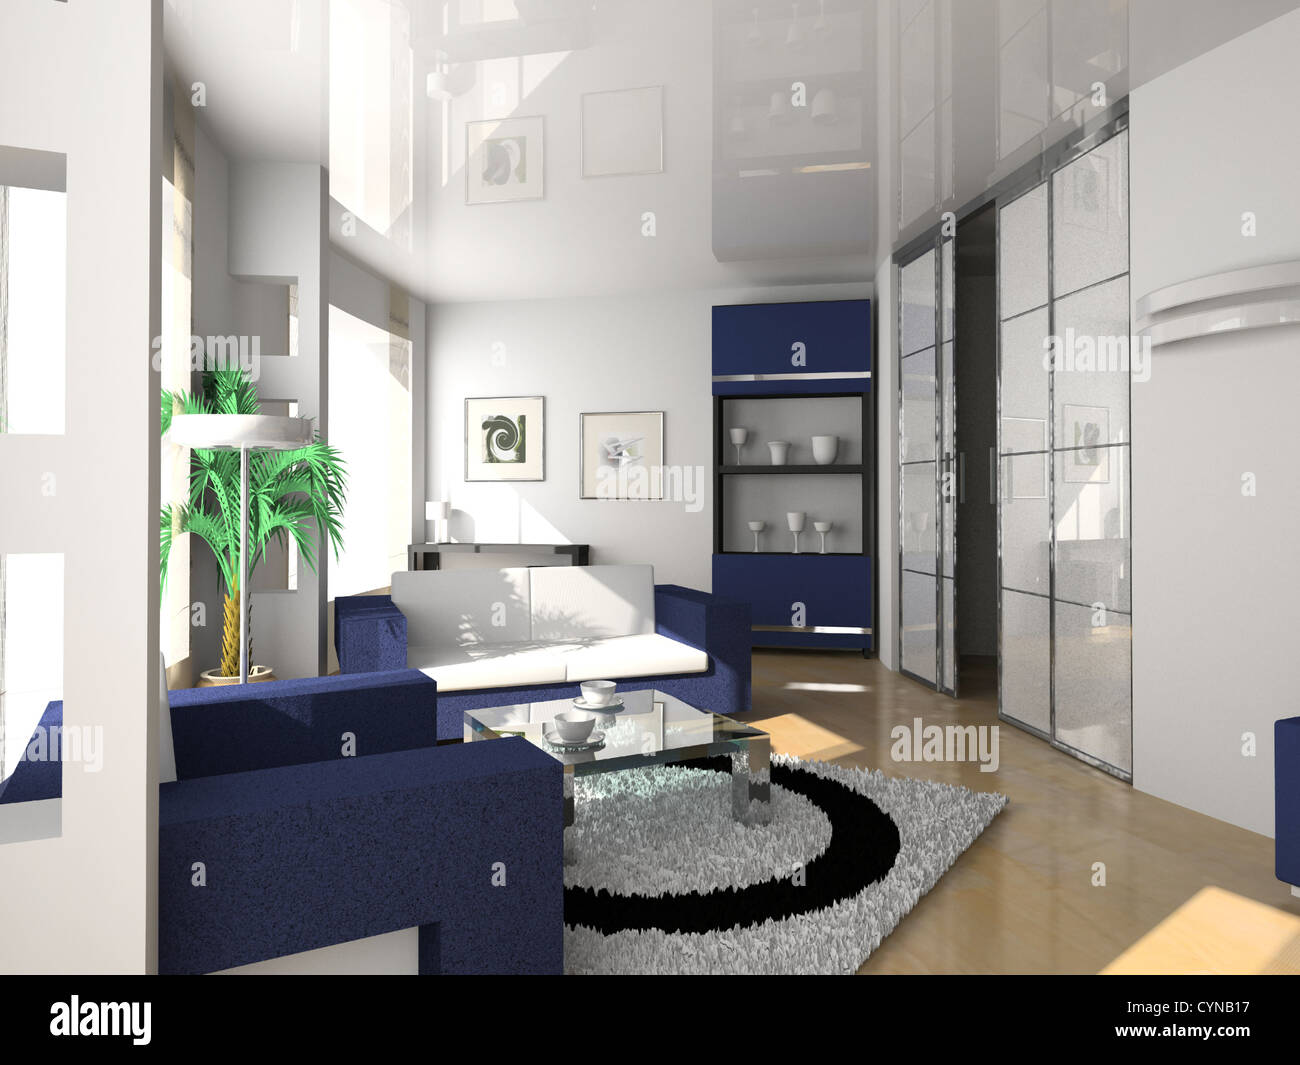 modern hotel interior design in modern style (privat apartment 3d